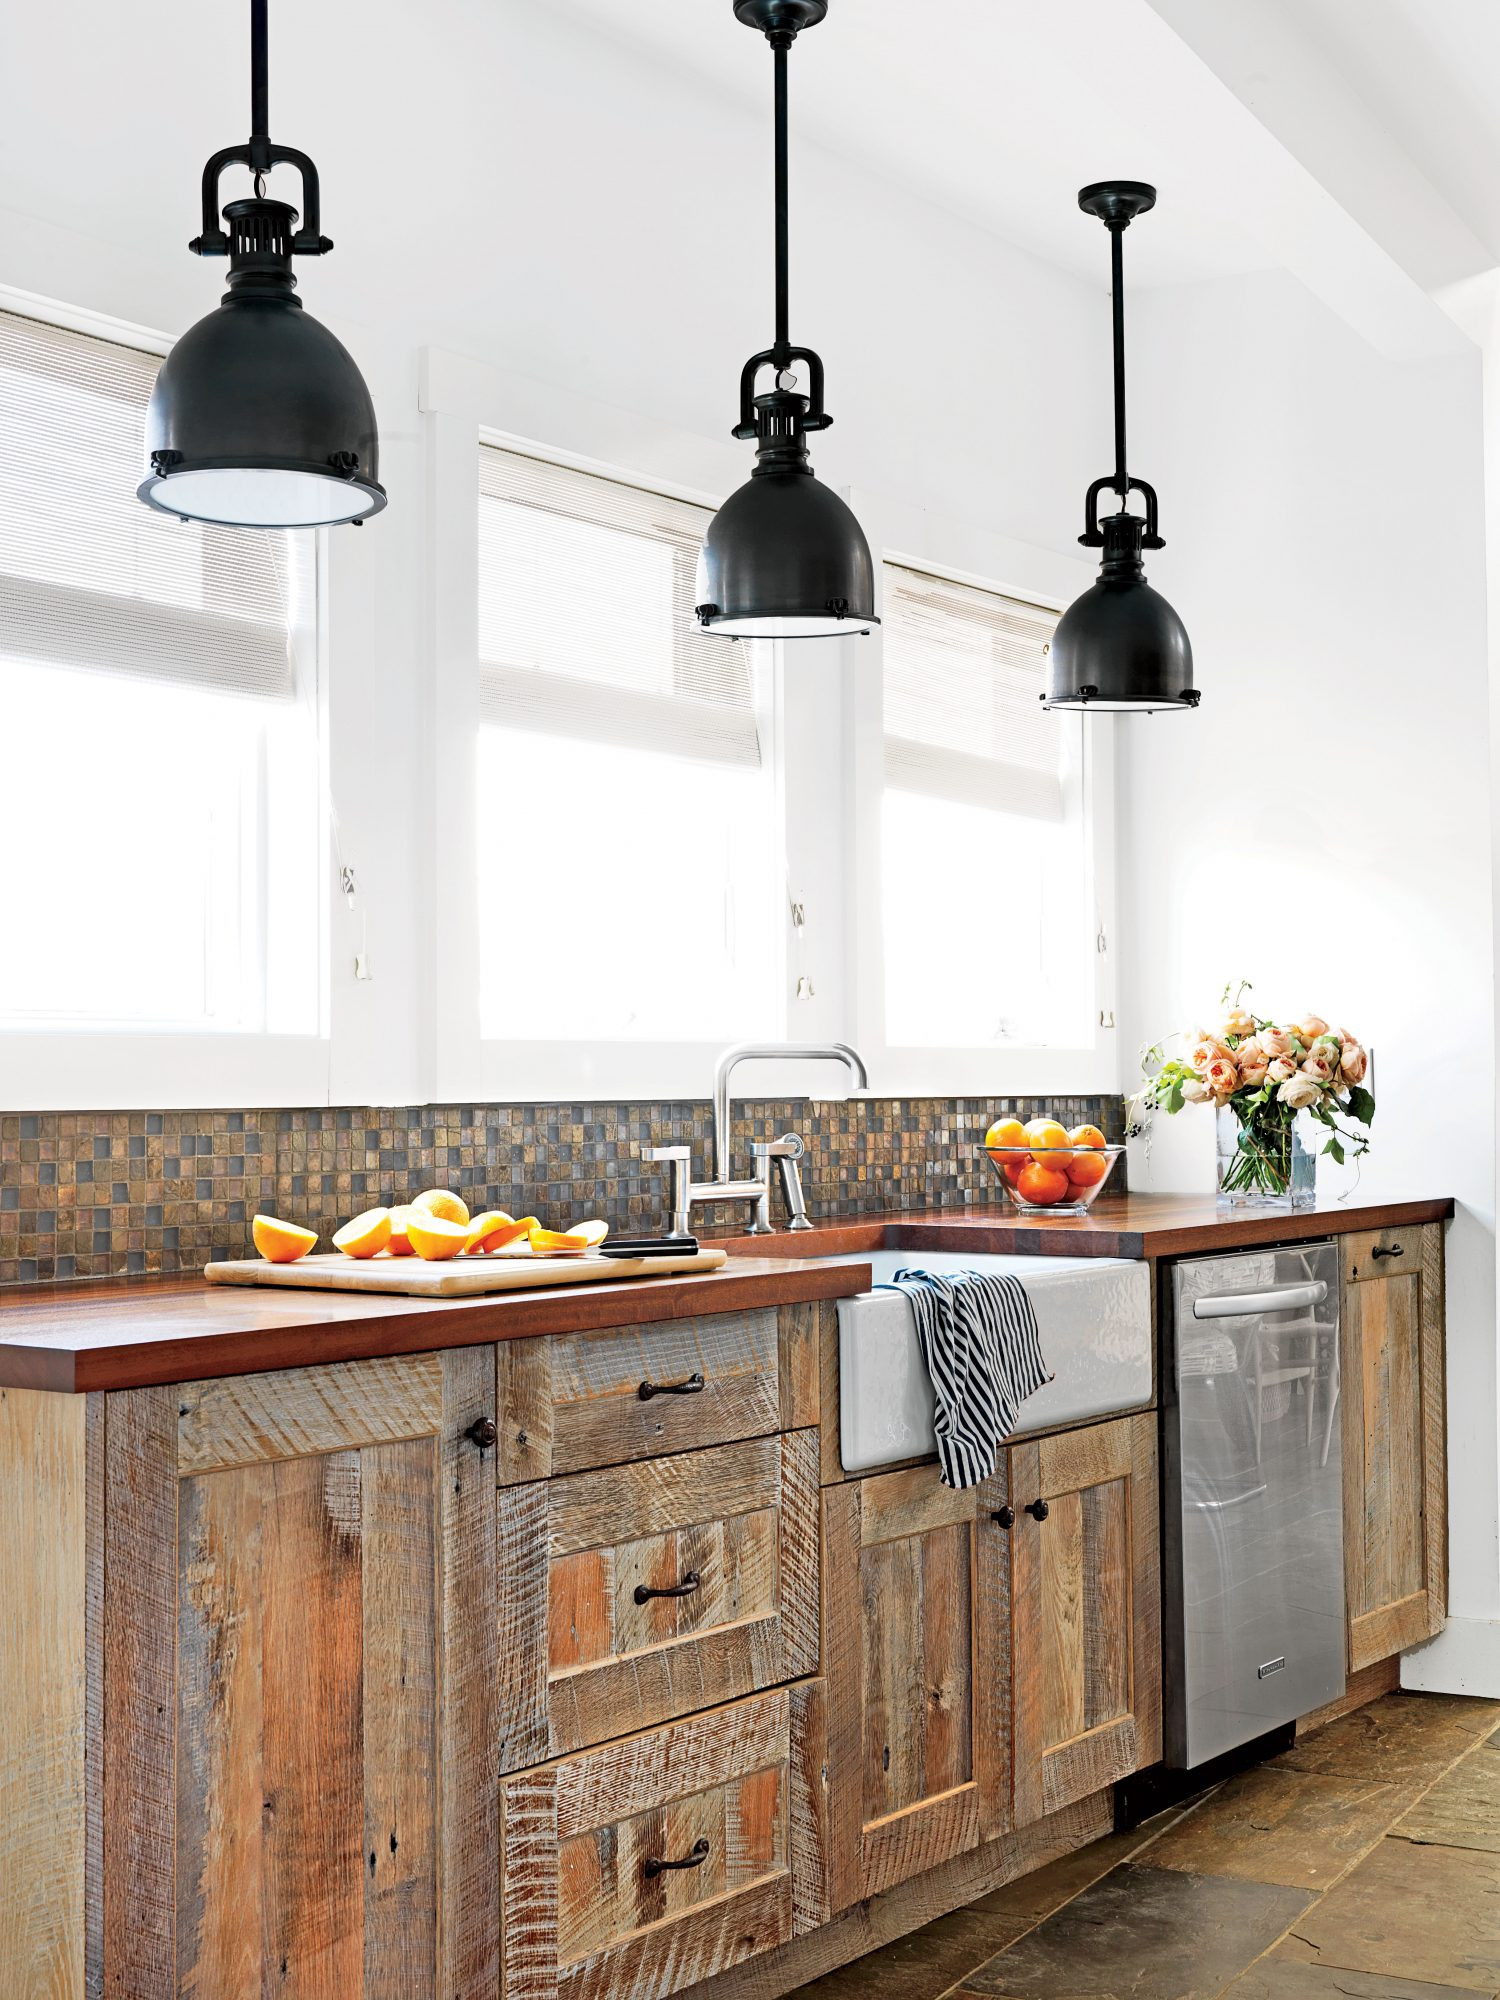 Reclaimed oak cabinets and a farm sink give this Long Beach Island, New Jersey, kitchen a laidback feel.